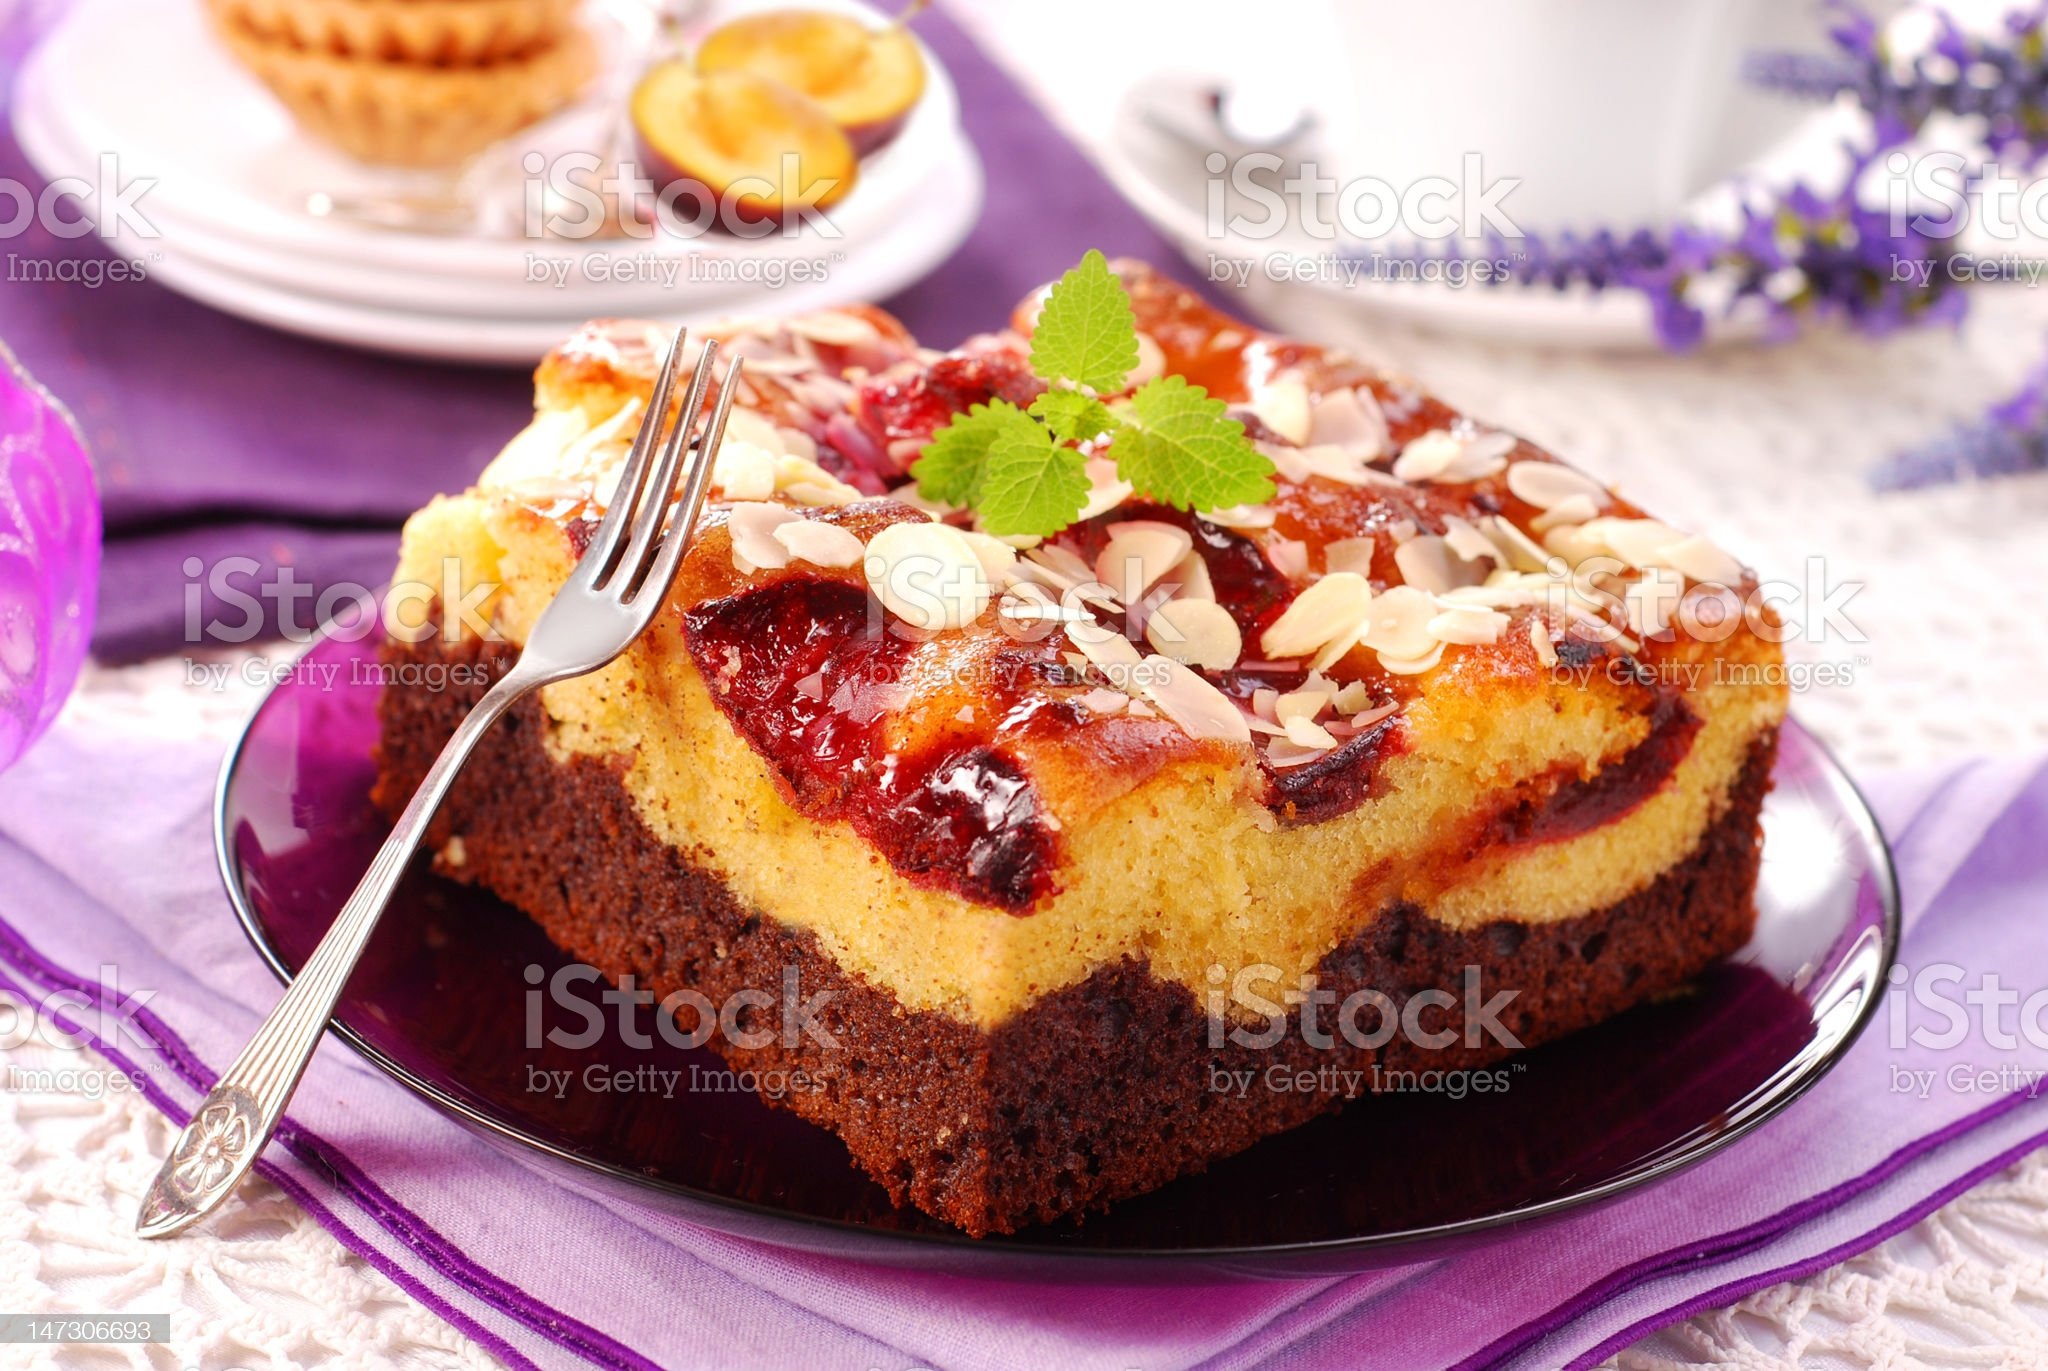 plum cake with almonds royalty-free stock photo